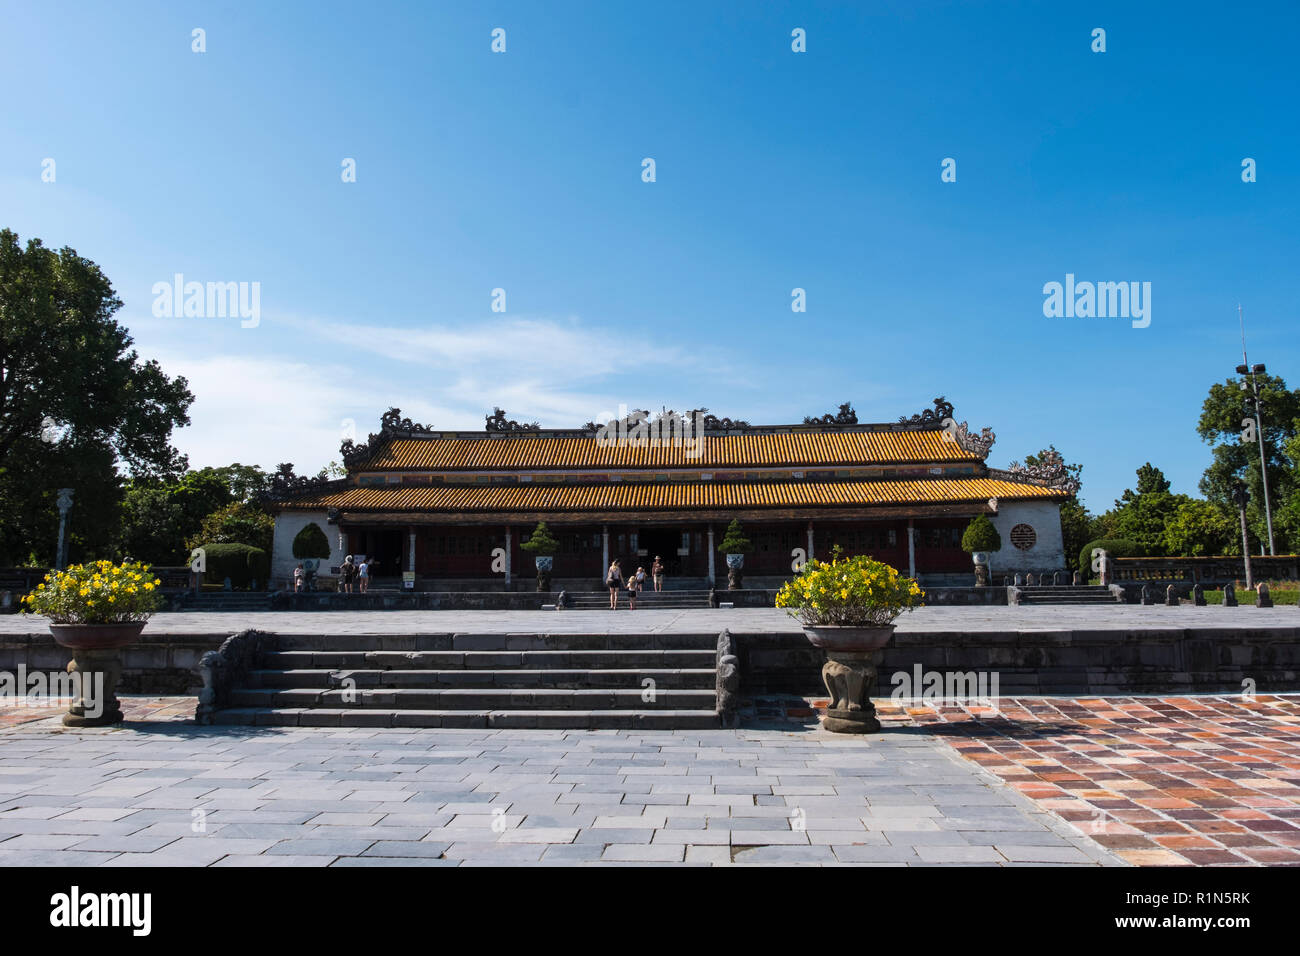 Thai Hoa Palace Inside the walled citadel the Imperial City Hue Vietnam Asia  Hoang thanh UNESCO World Heritage Site Stock Photo